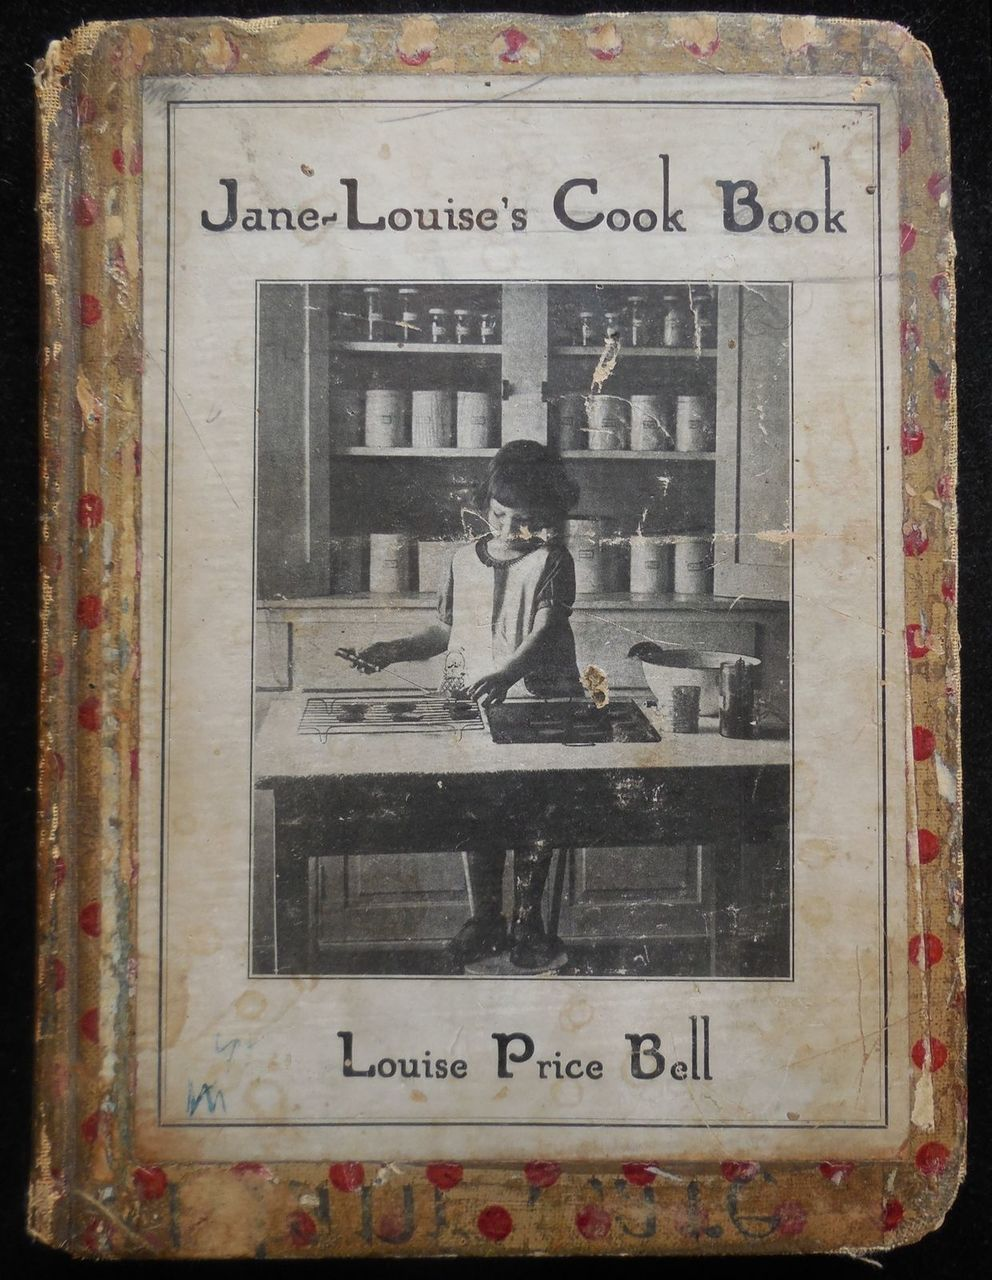 JANE-LOUISE'S COOK BOOK: A COOK BOOK FOR CHILDREN by Louise Price Bell - 1930